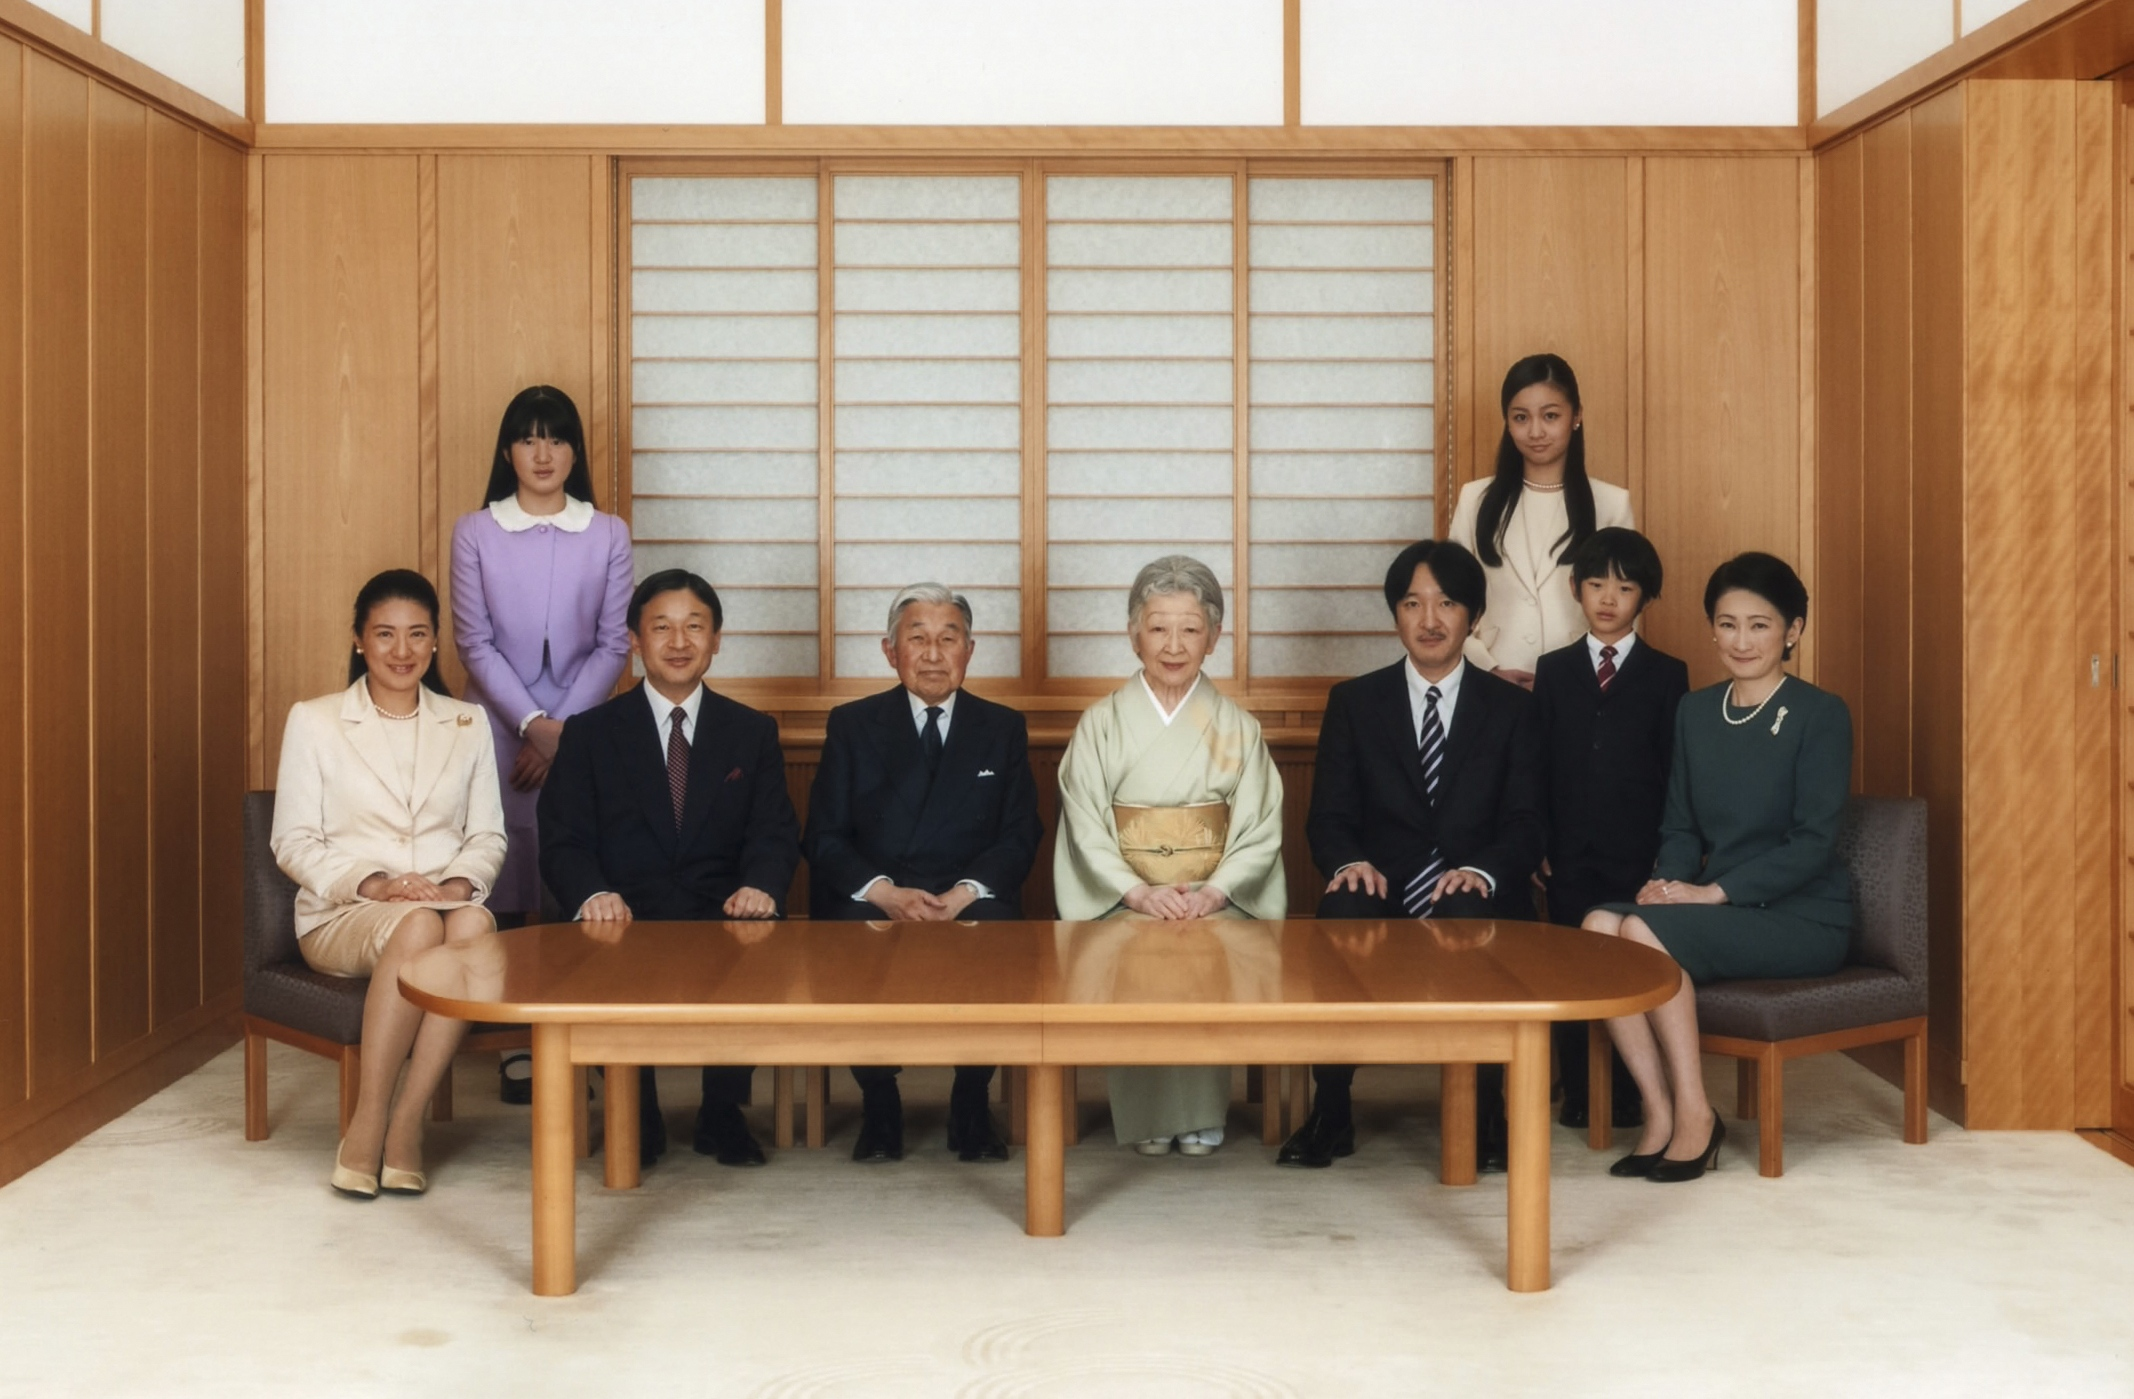 Handout picture shows Japan's Emperor Akihito and Empress Michiko posing with their family members during a family photo session for the new year at the Imperial Palace in Tokyo